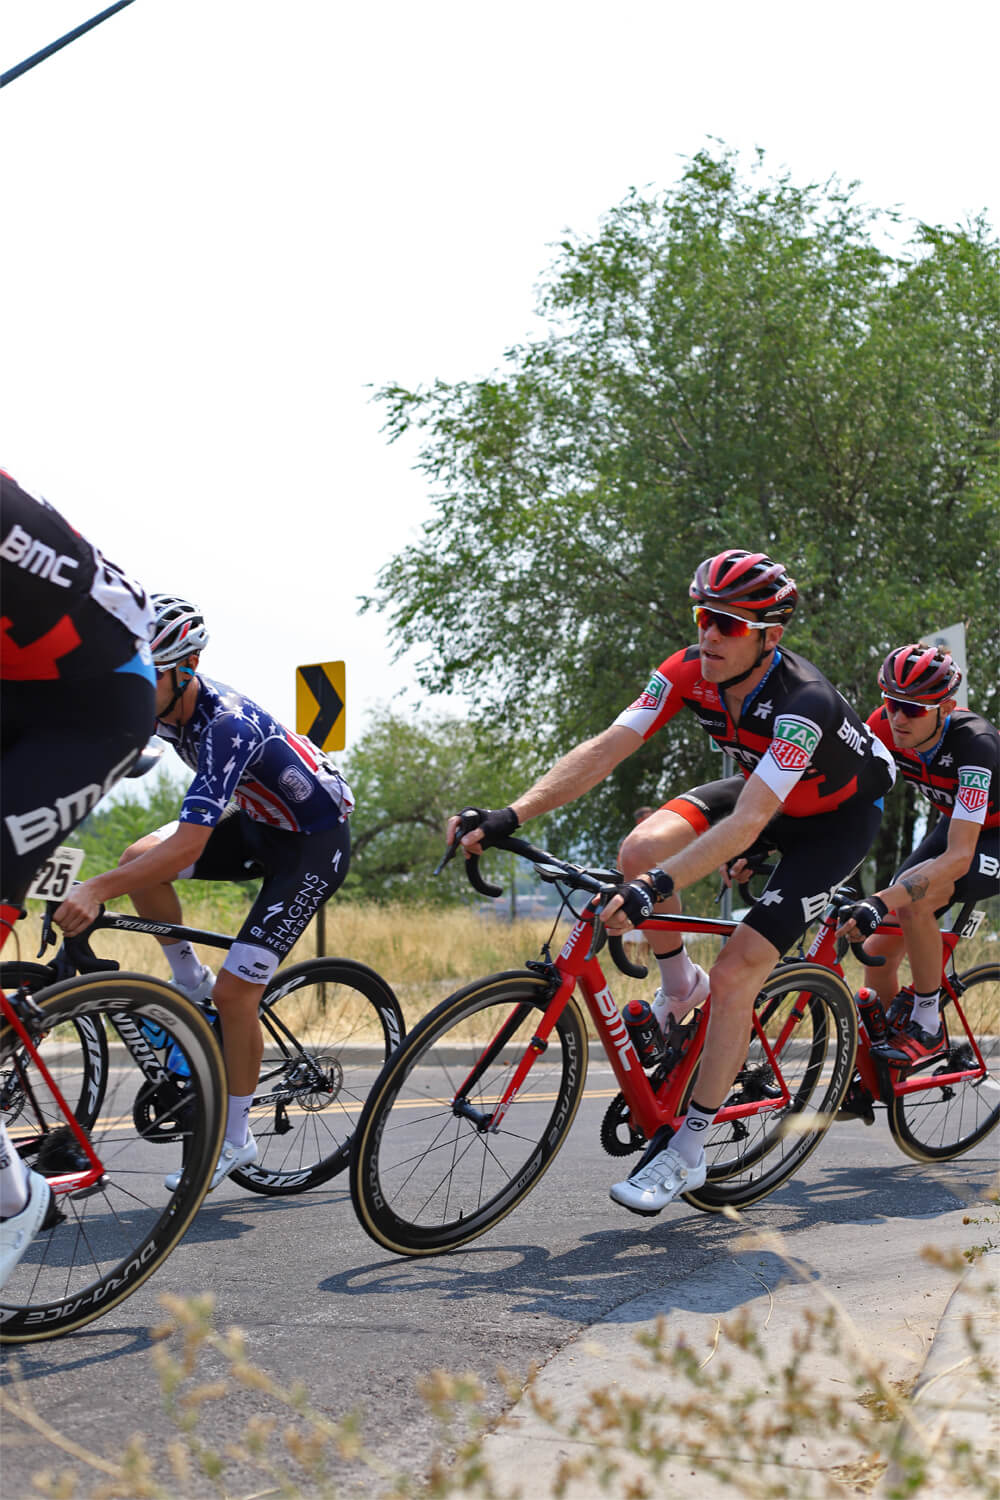 Contender Salt Lake City Stage Tour of Utah BMC Racing Team Brent Bookwalter entering City Creek